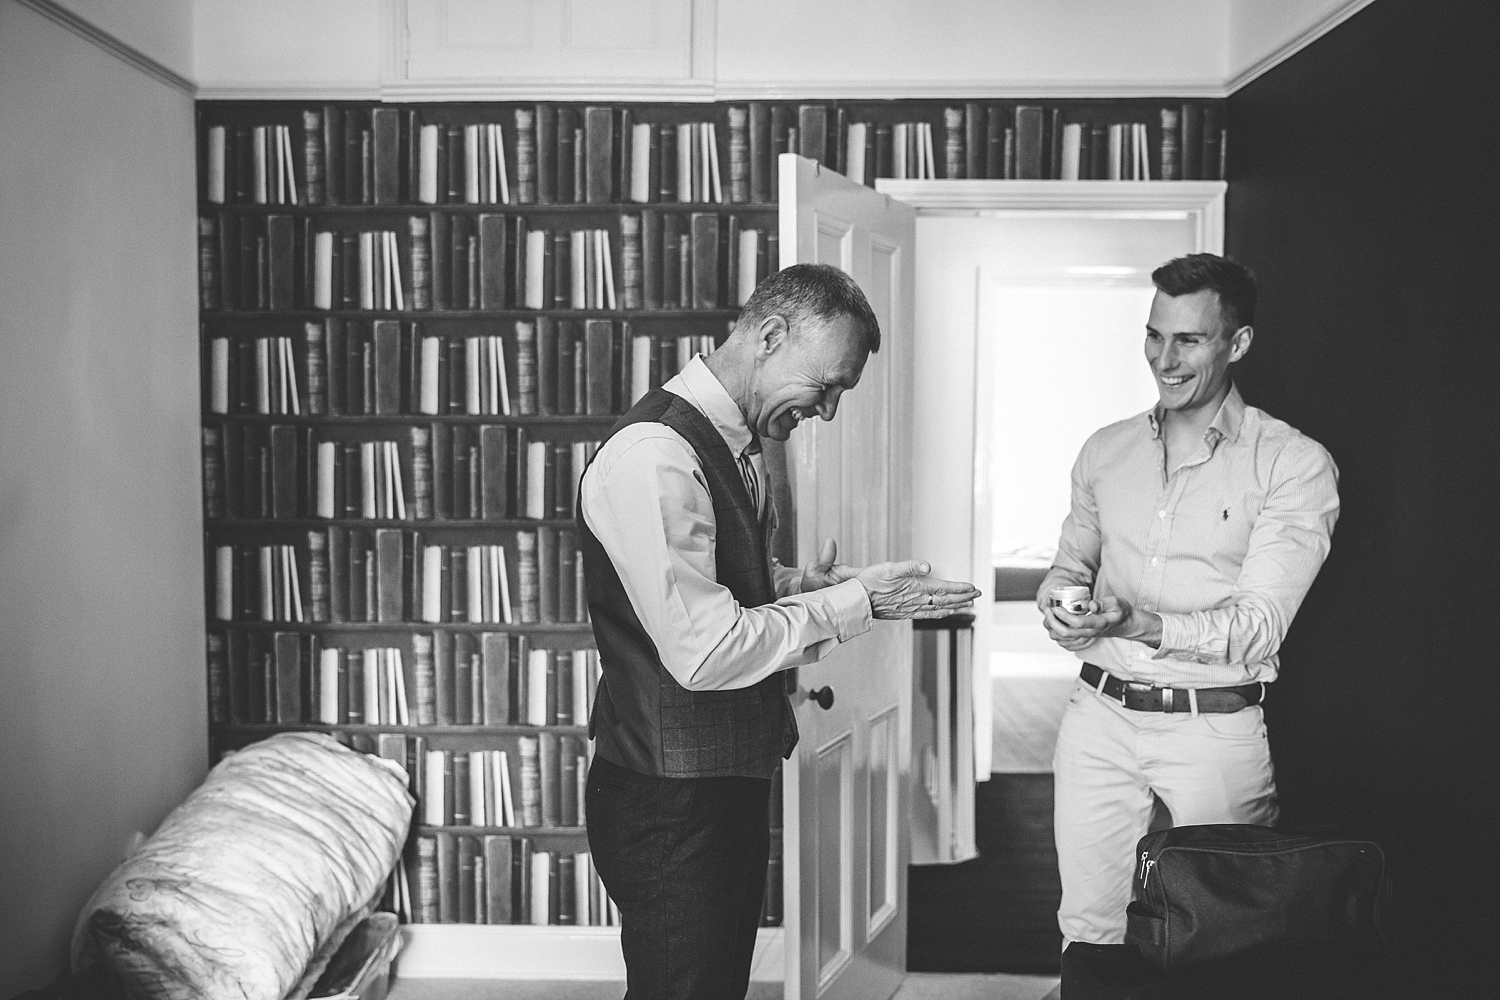 Natlie-Matthew-yorkshire-natural-relaxed-fun-documentary-reportage-candid-wedding-photography-photographer-Derby-Nottingham-Derbyshire-Nottinghamshire-Leicestershire-Lincolnshire-East-Midlands-17.jpg